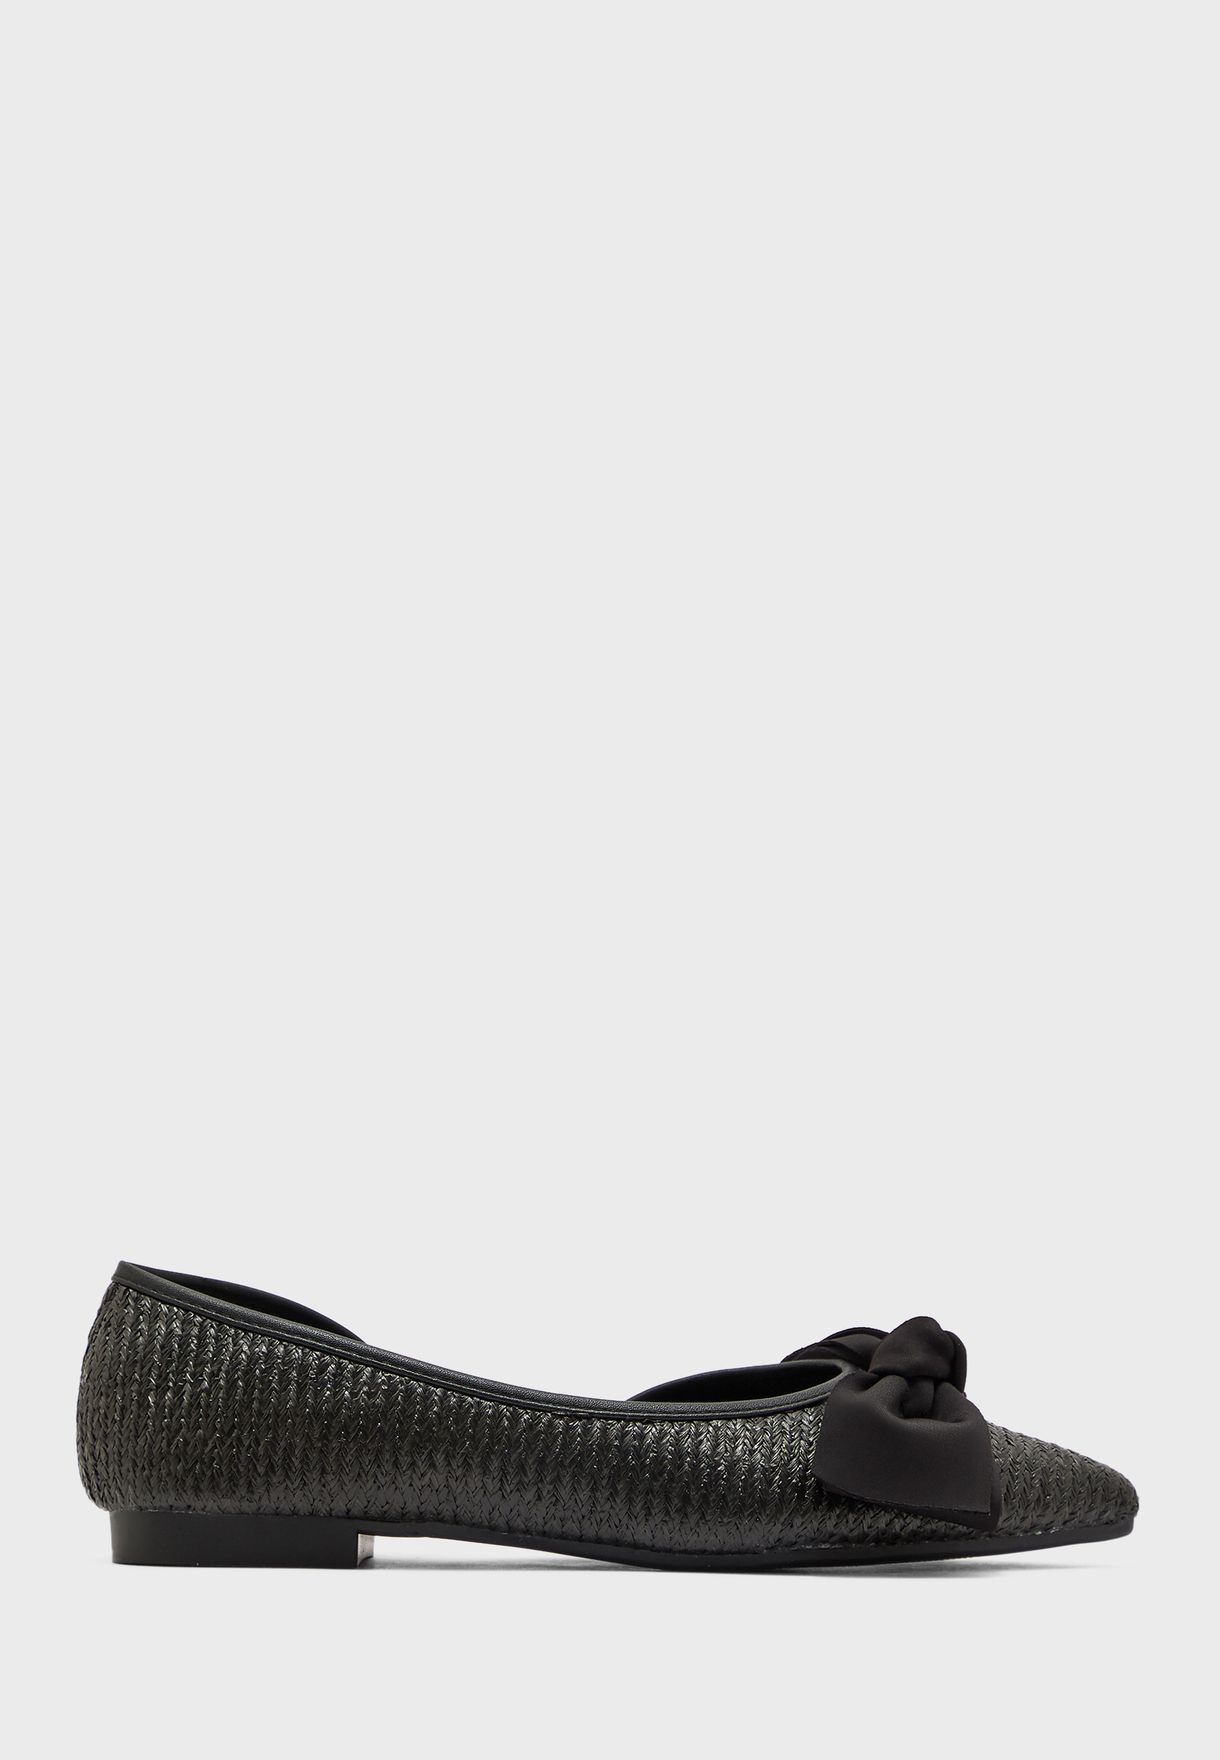 Woven Pointed Shoe With Bow